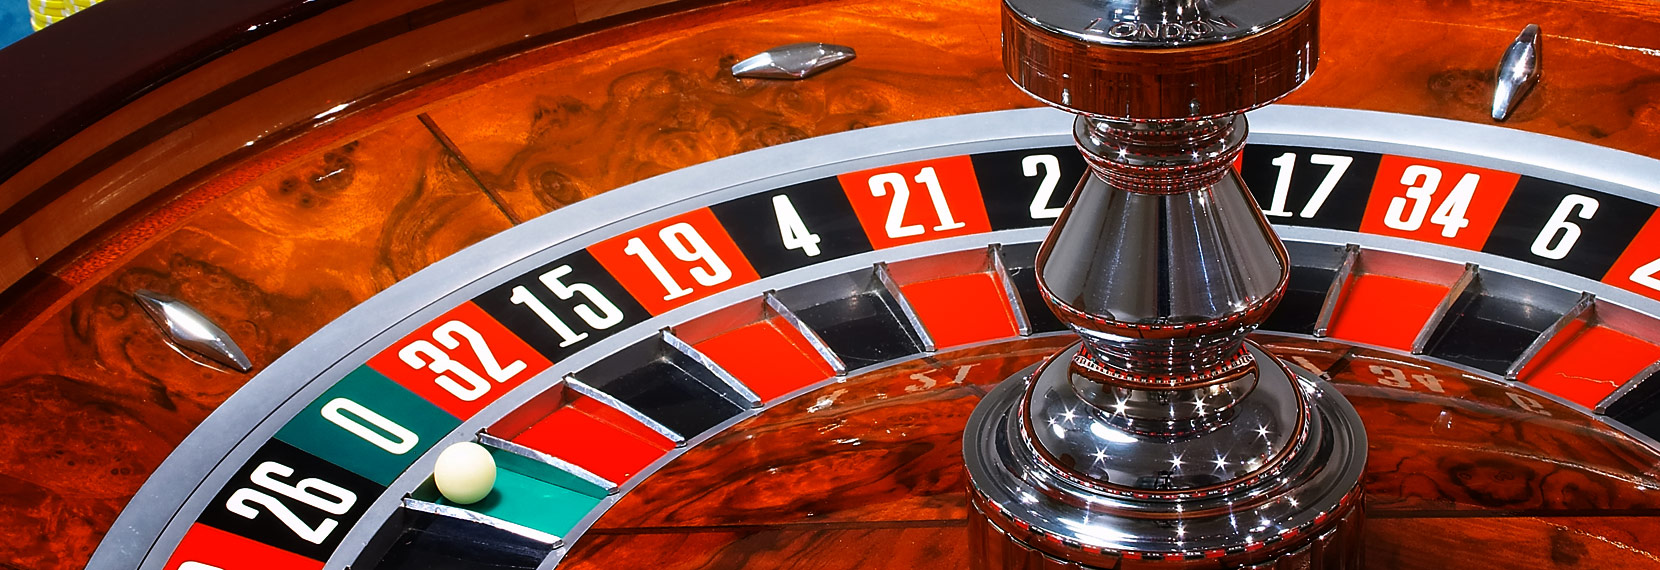 Whittaker Roulette Betting System